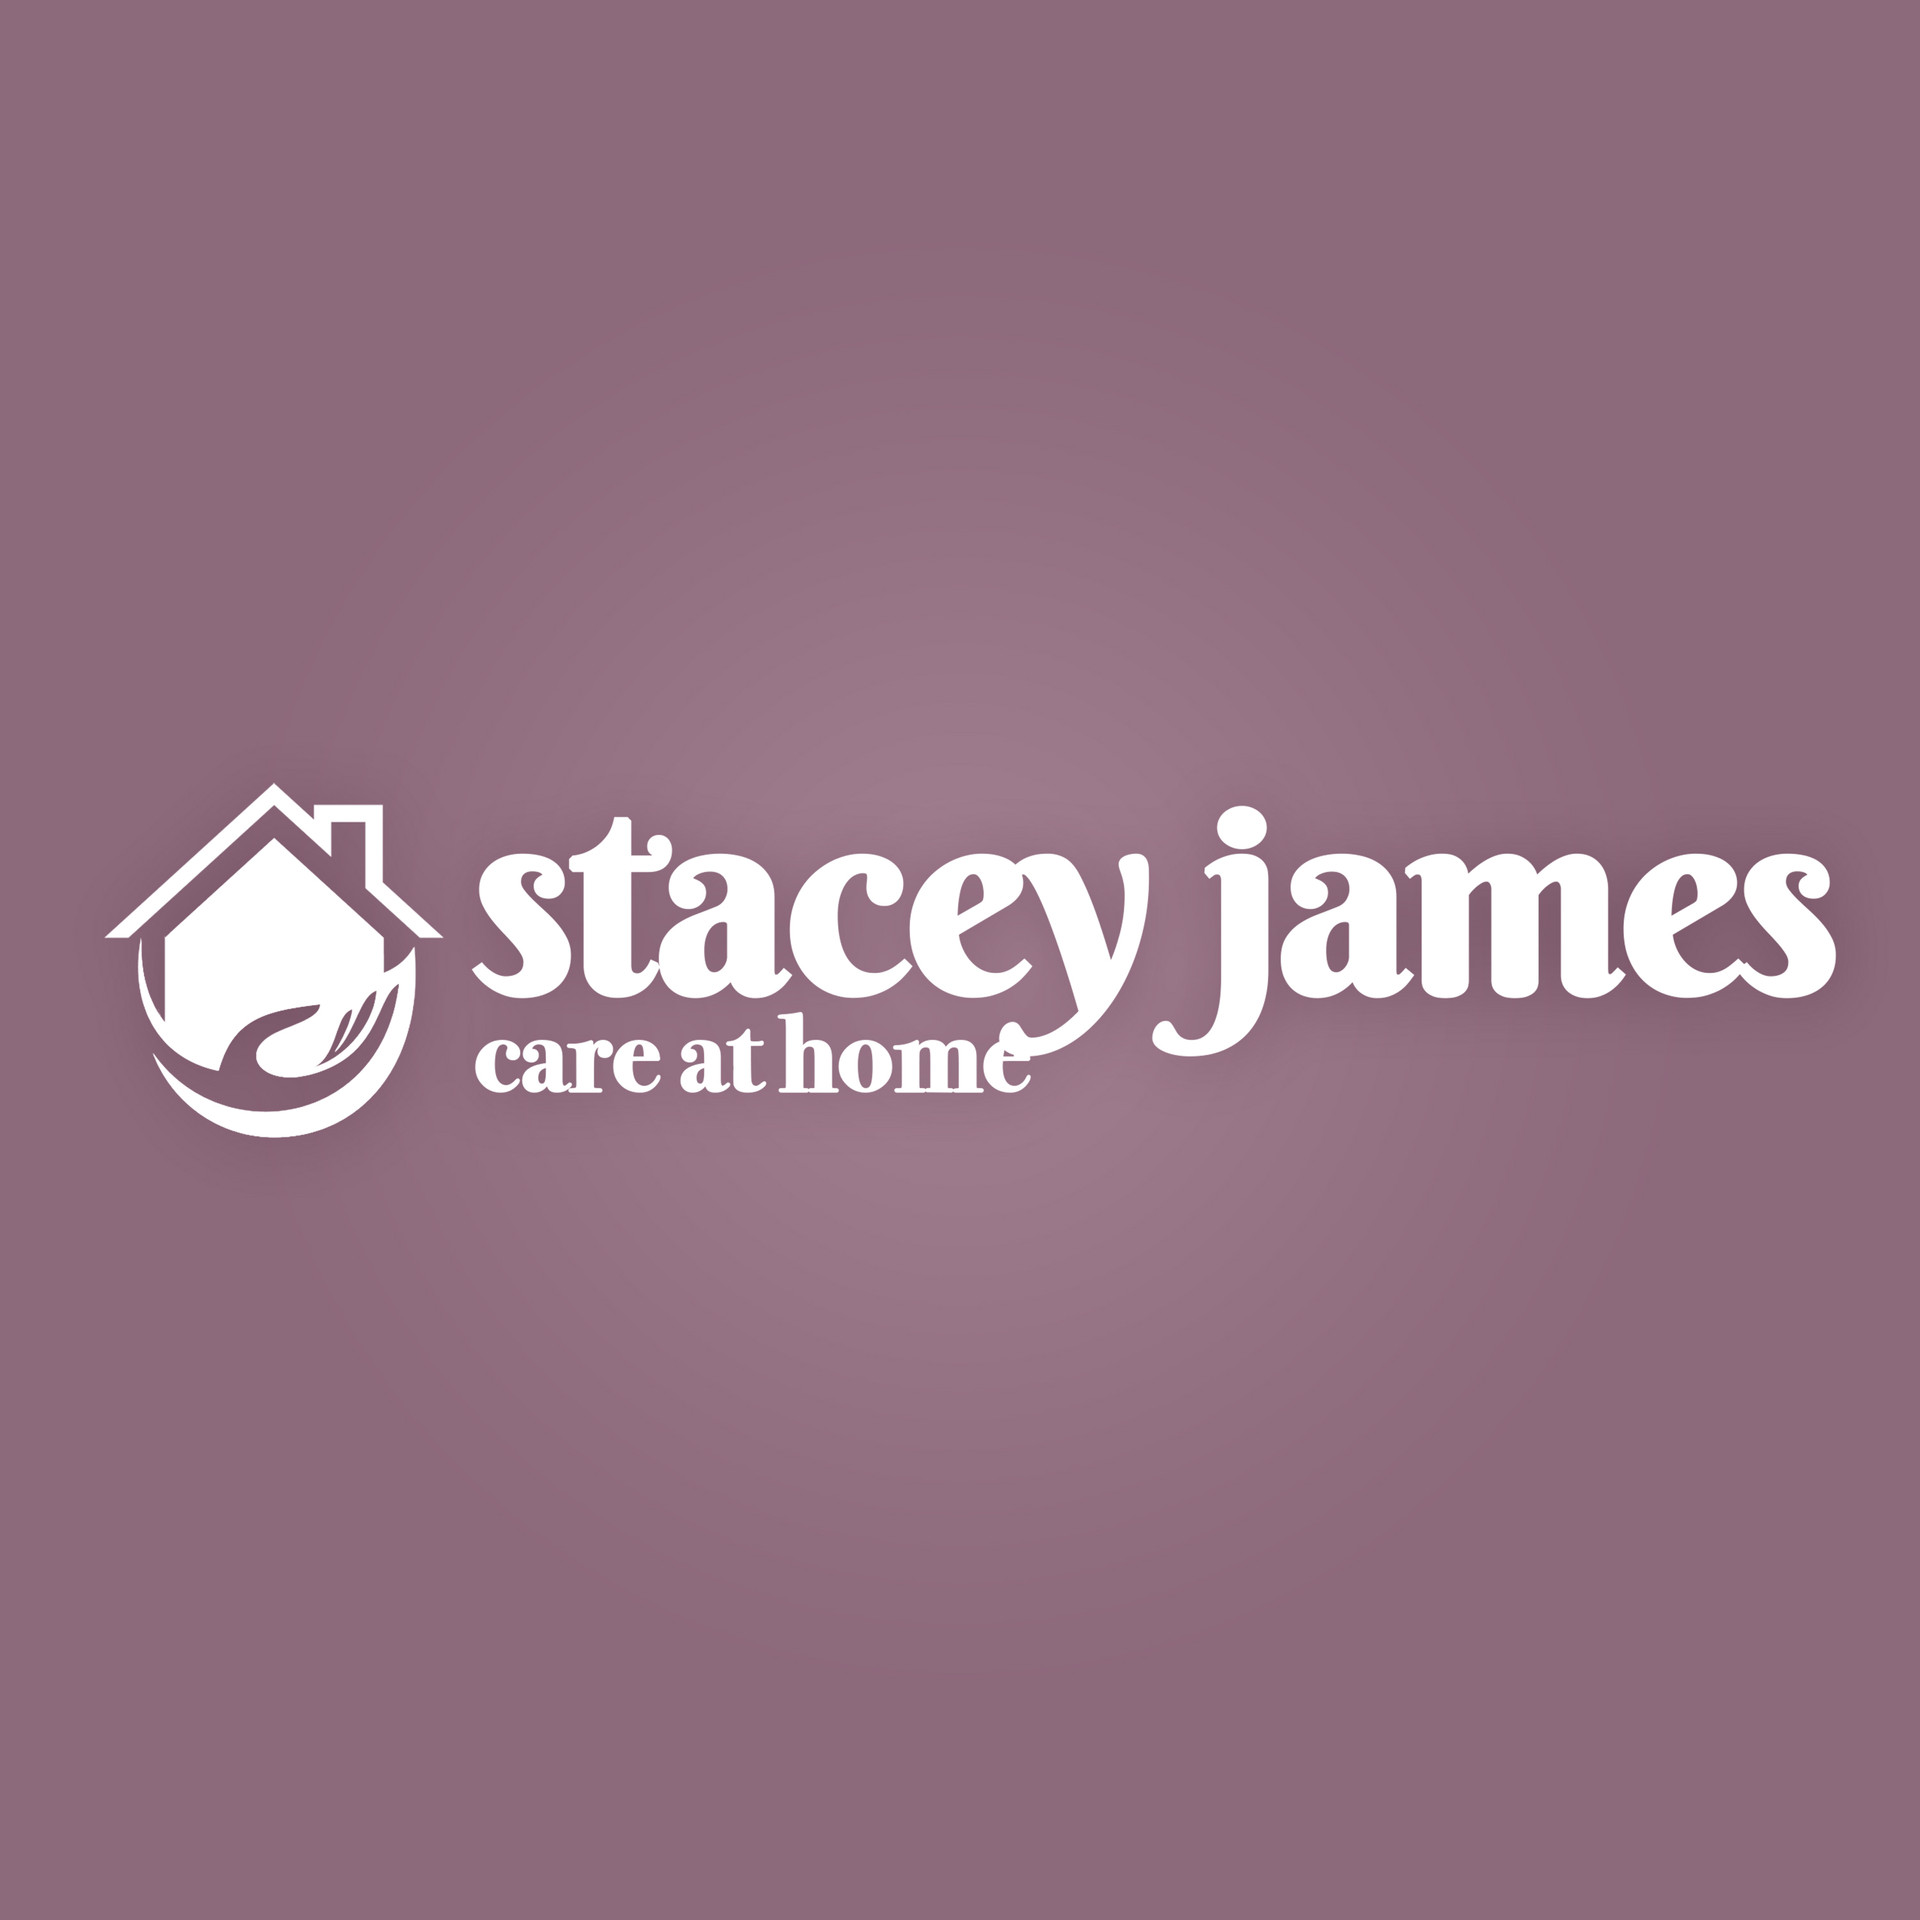 Stacey James Care at Home Logo Display.j